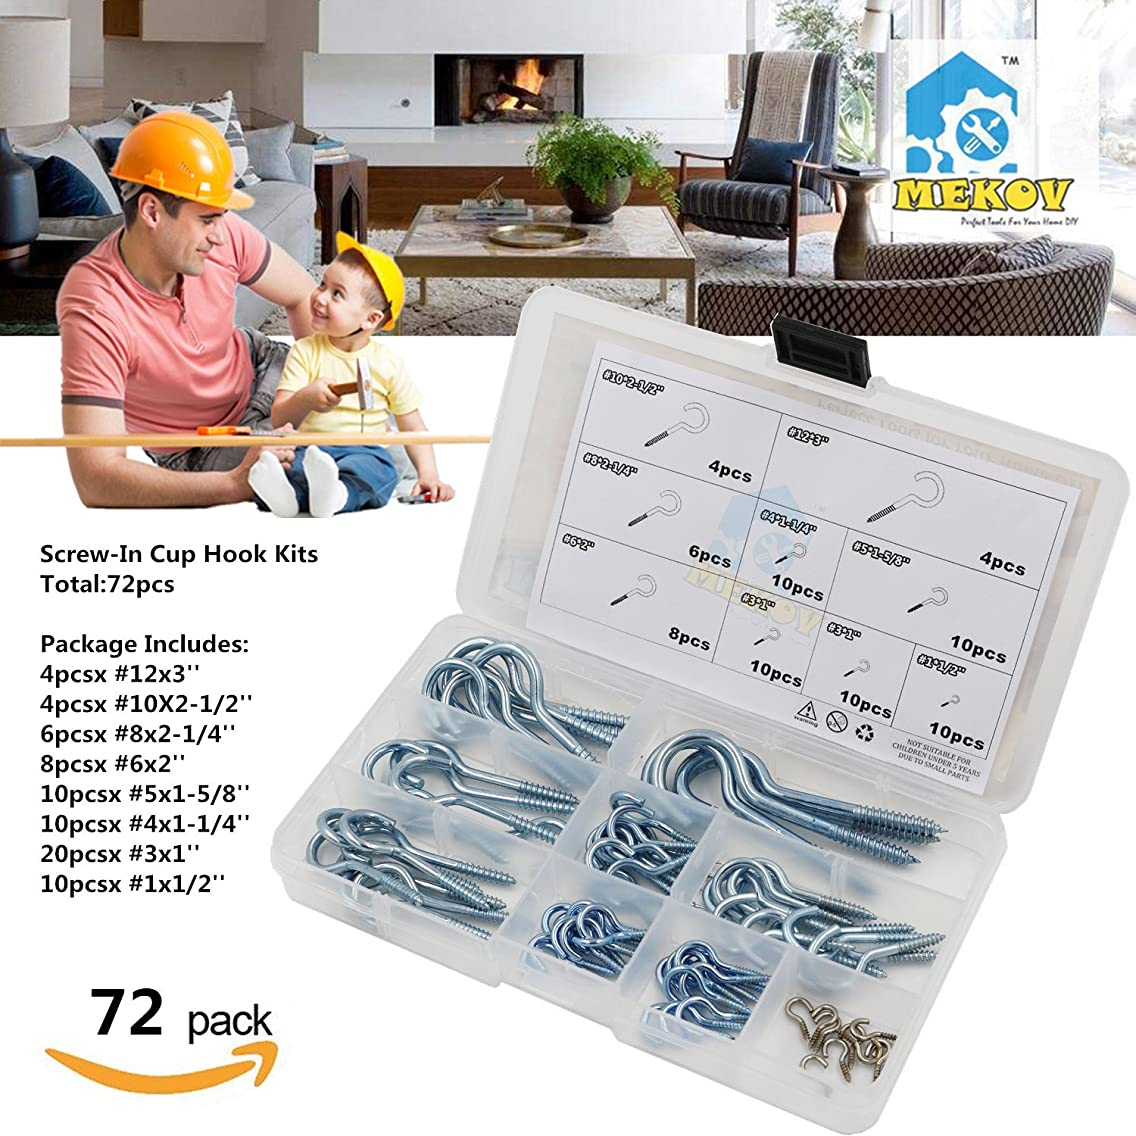 Mekov, 72pcs Zinc Plated Screw-In Cup Hooks Assortment Kit, Common Home Use Screw Set - Screw-In Cup Hook Kit